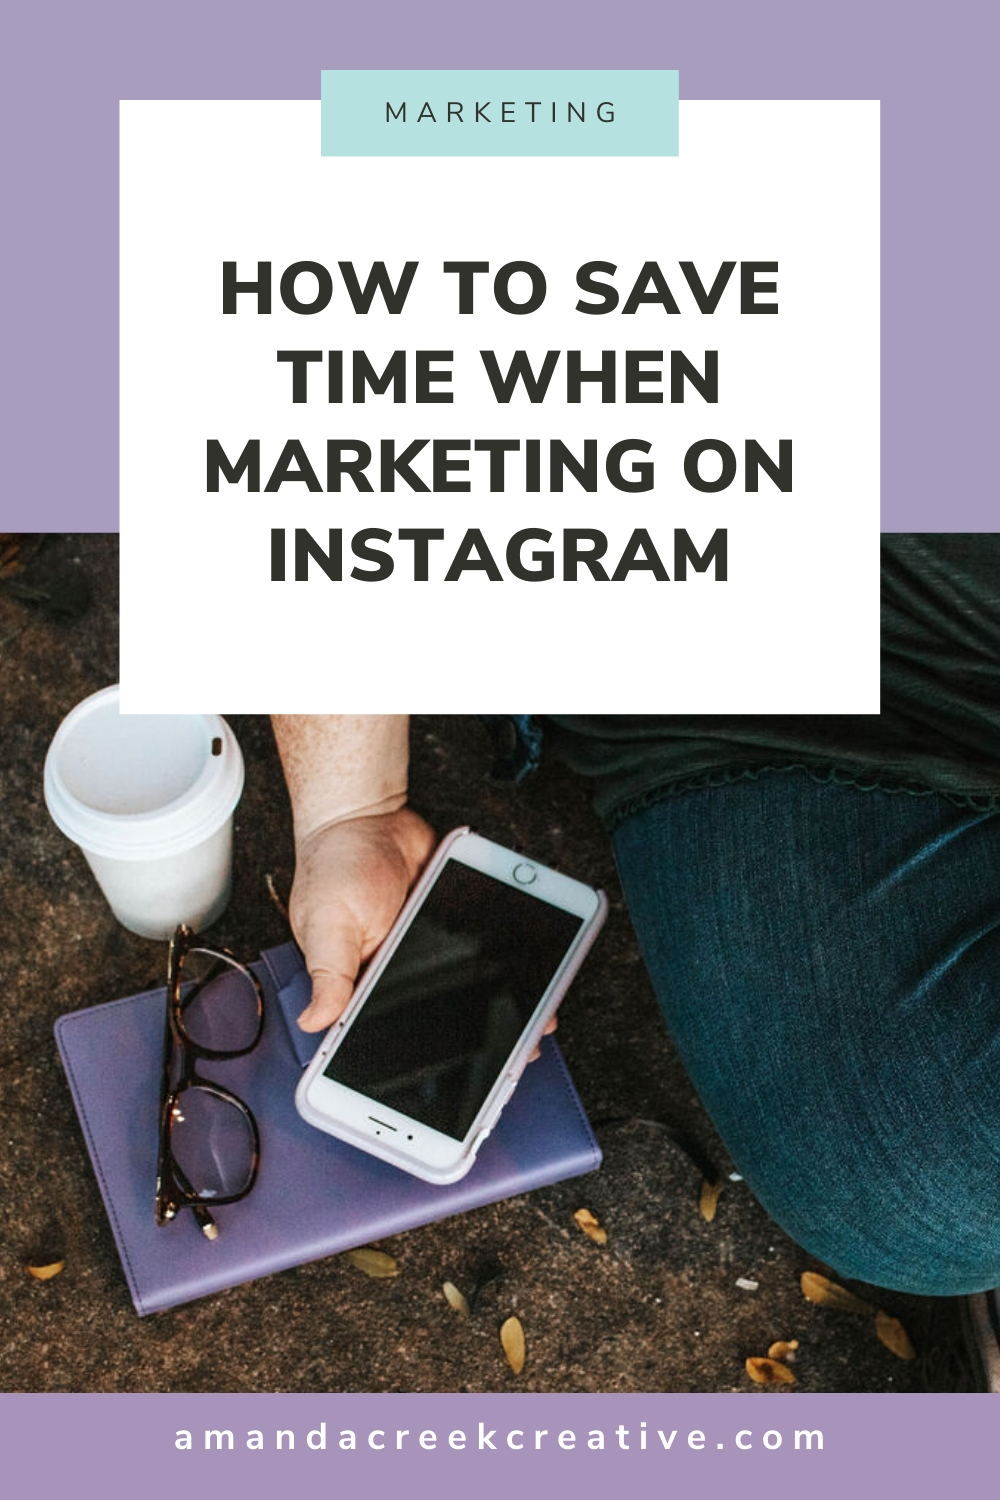 How to Save Time When Marketing On Instagram